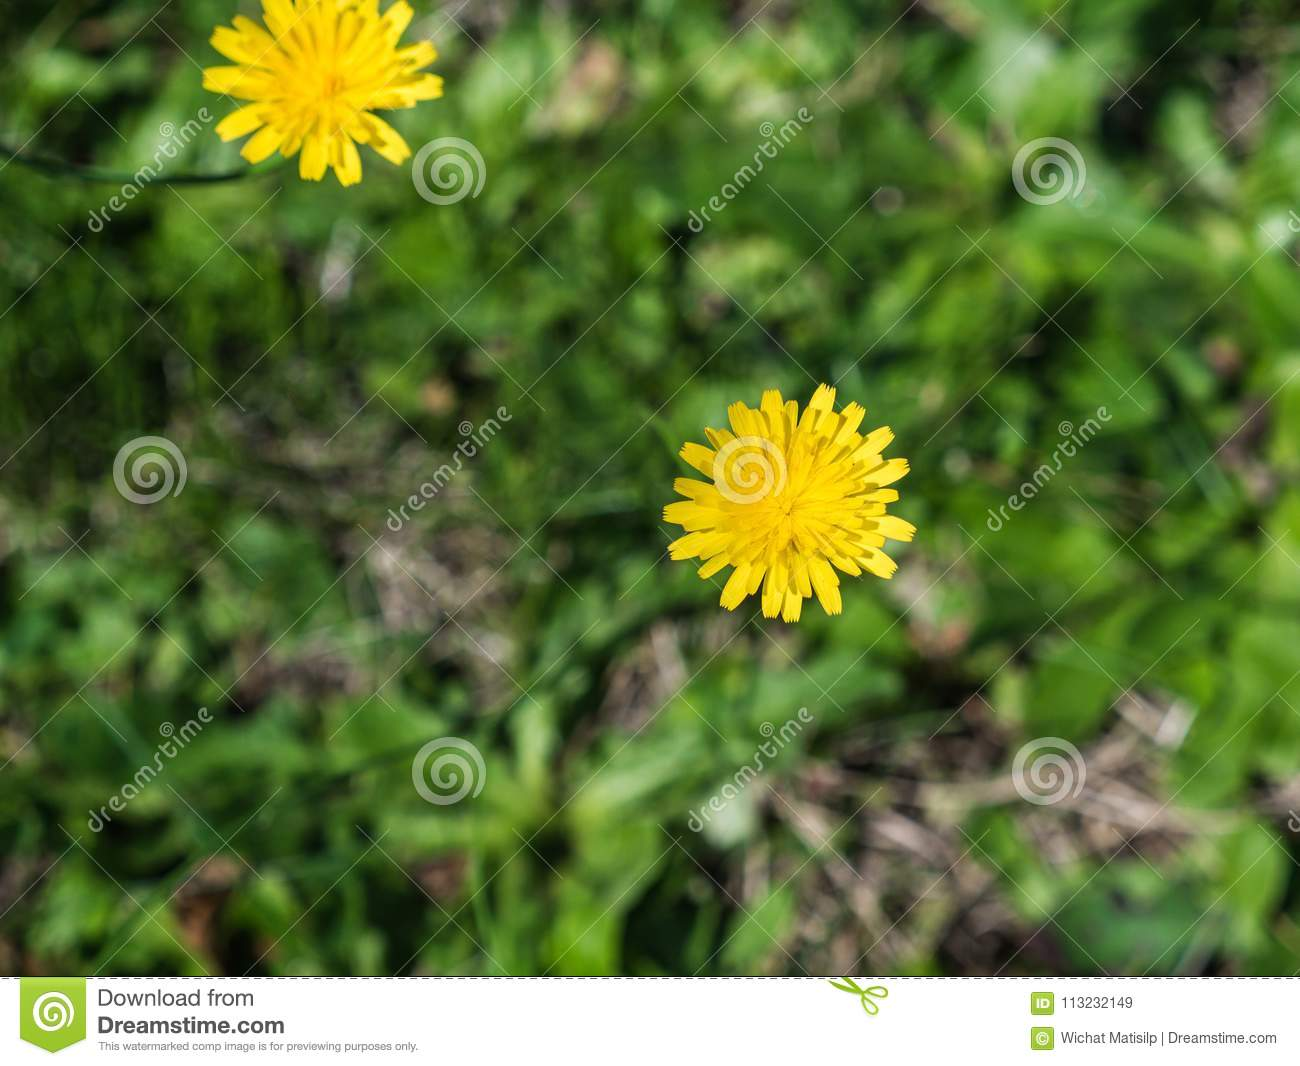 Little yellow flowers blooming on the ground stock image image of download little yellow flowers blooming on the ground stock image image of bloom colorful mightylinksfo